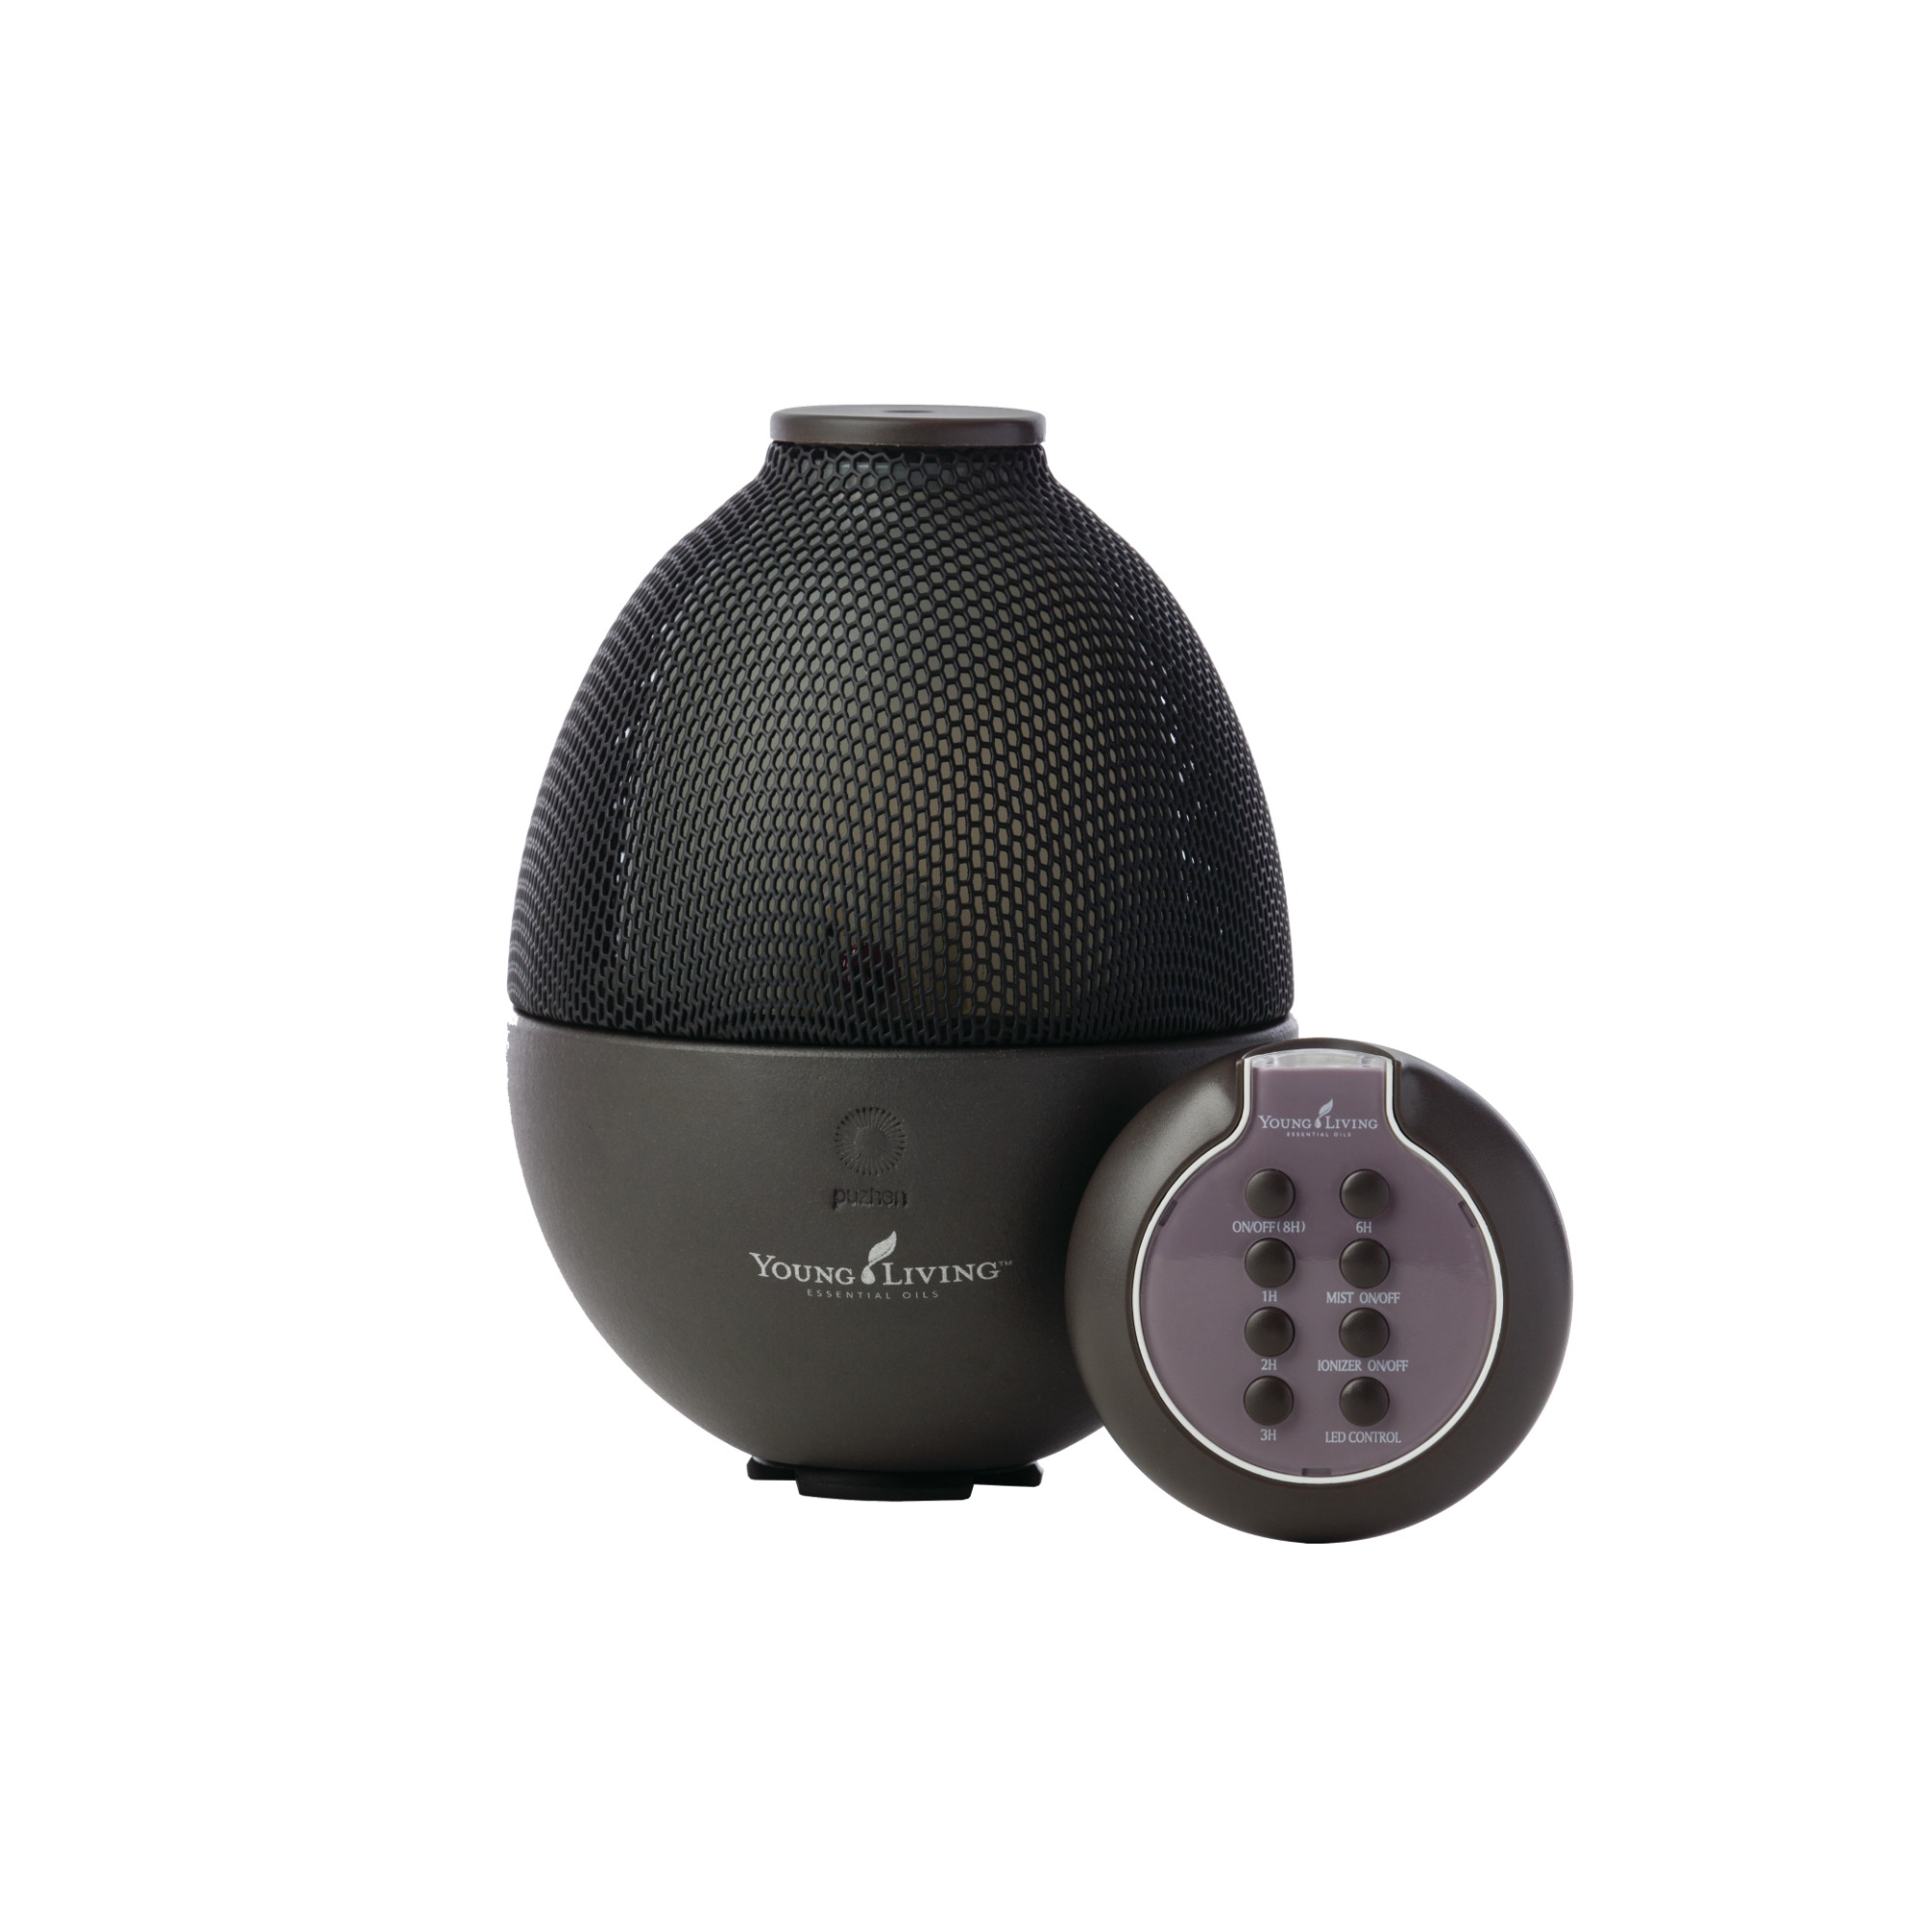 RAINSTONE DIFFUSER    This diffuser is a popular one for the home, and its sleek design is also a favorite for men and women alike. It has multiple hour settings with automatic shutoff, five colorful LED light settings, a negative ionizer, and a remote control. Comes with a 5ml bottle of Tangerine and Peppermint essential oils.   Click here   to learn more about this product.